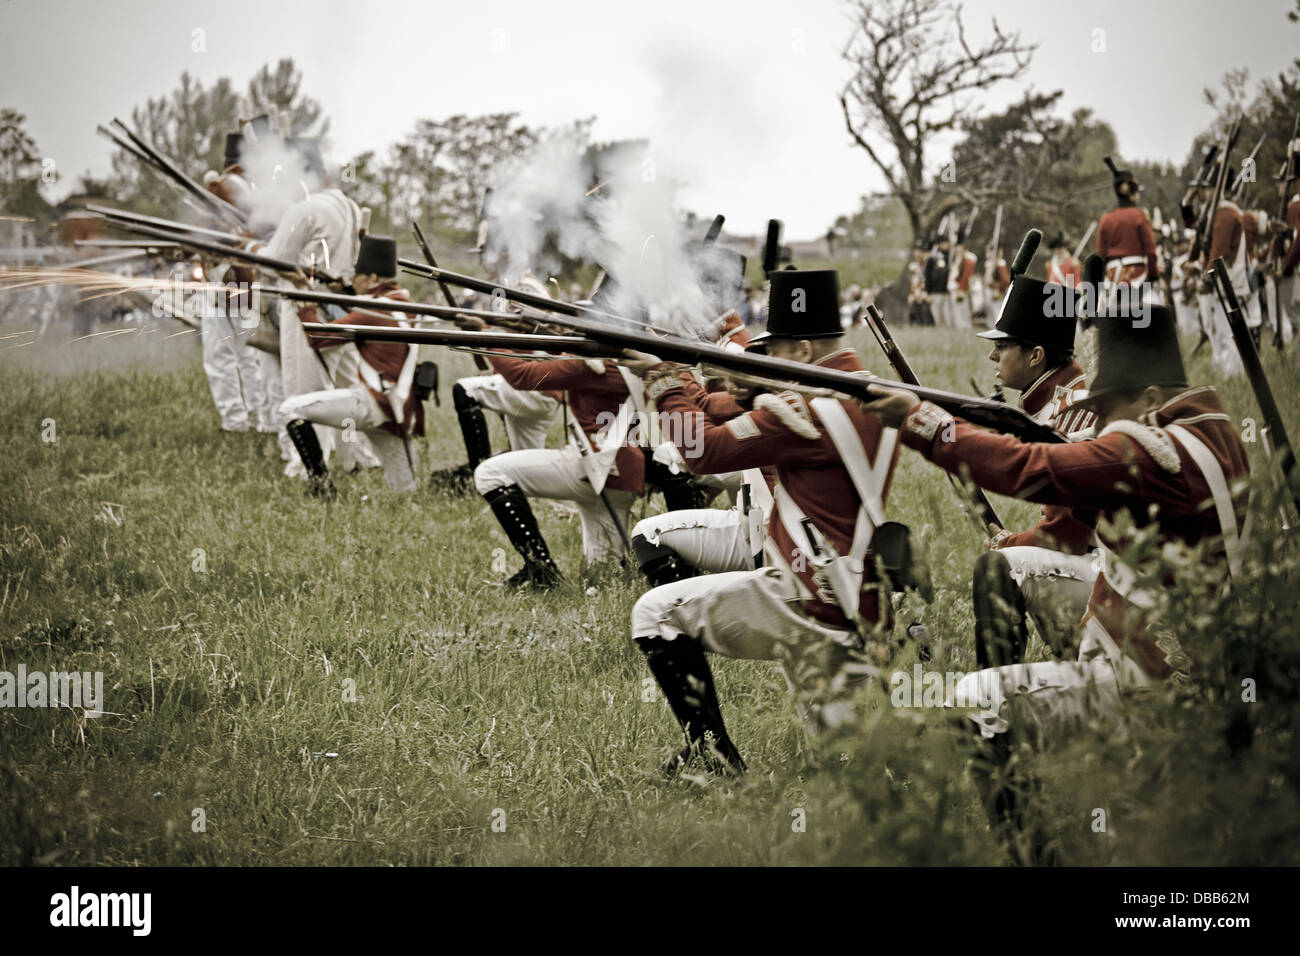 Canada,Ontario,Stoney Creek, War of 1812, Battle of Stoney Creek, British troops firing muskets - Stock Image